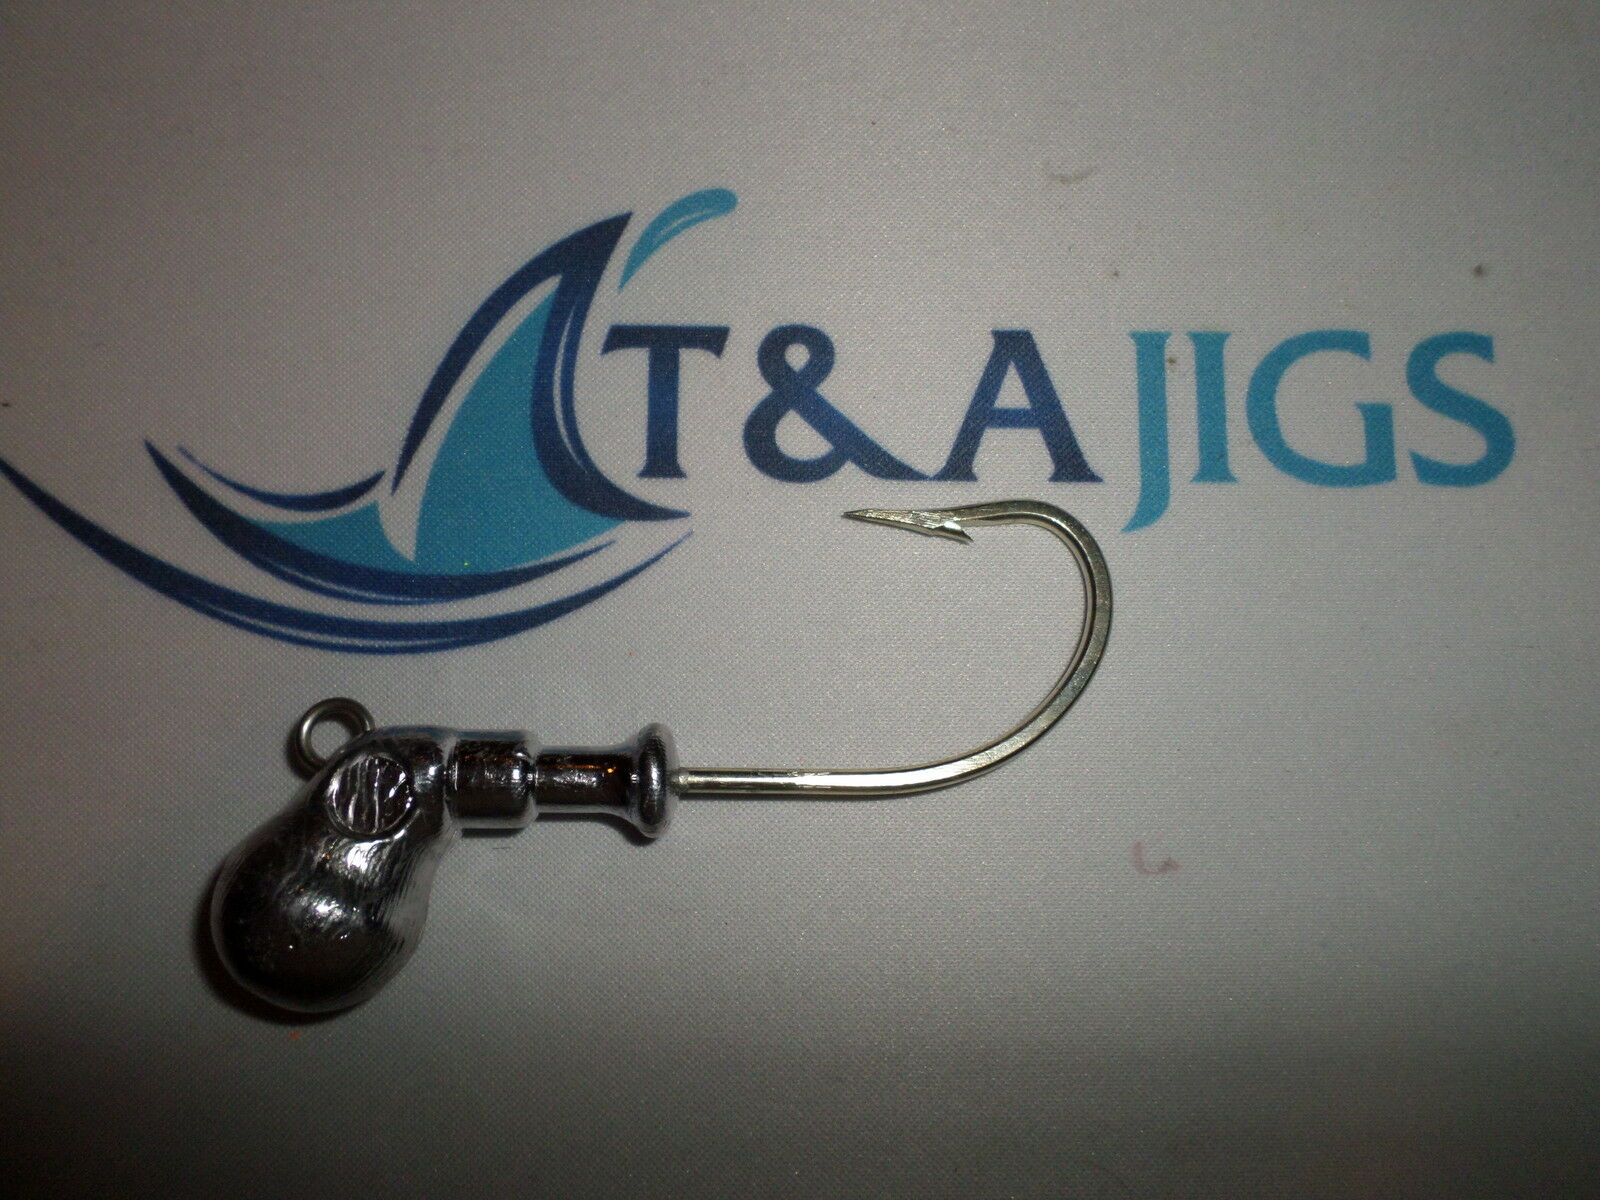 10 Octopus Jigs 6oz Jig  Heads UNPAINTED 10 0 Hook Cobia Ling Cod T&A JIGS  stadium giveaways